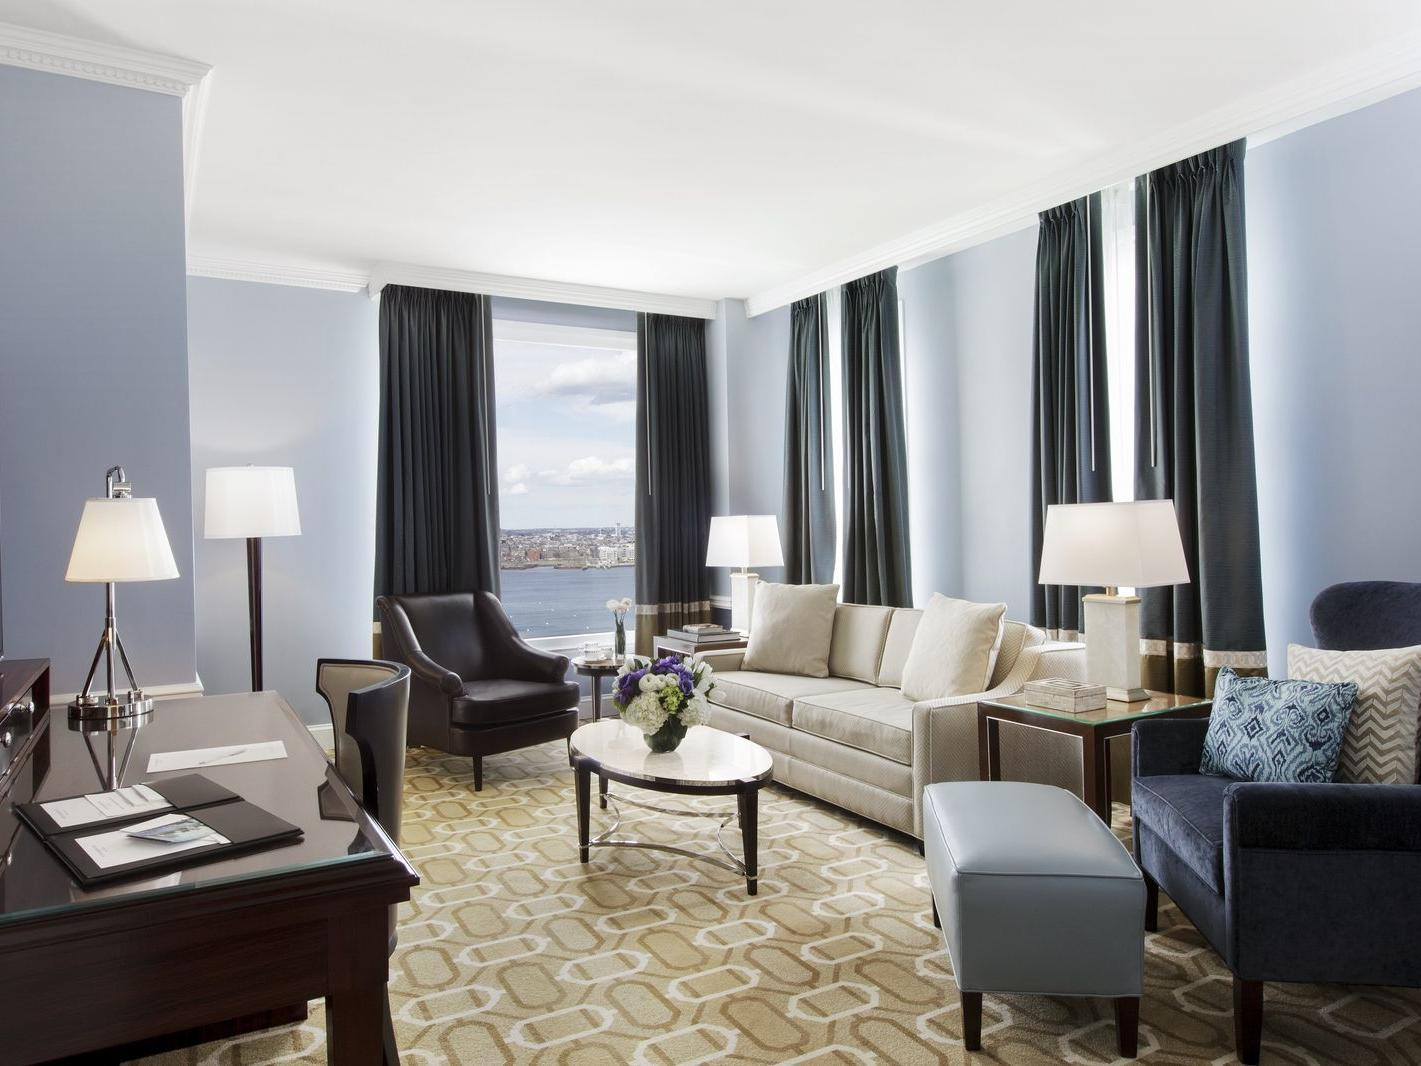 Suite living room with couch, accent chairs and desk with harbor view